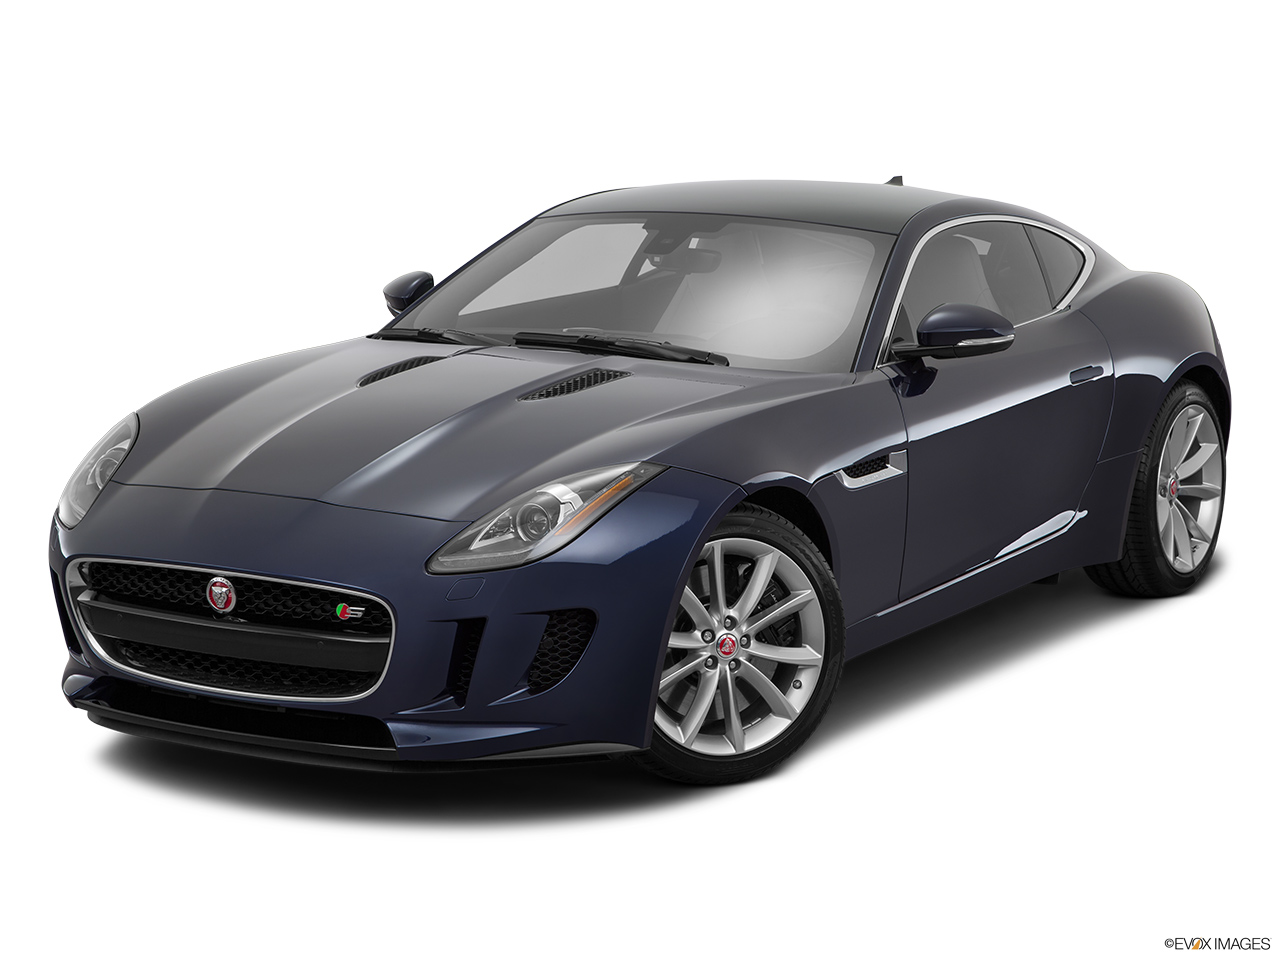 car features list for jaguar f type coupe 2016 v6 uae yallamotor. Black Bedroom Furniture Sets. Home Design Ideas